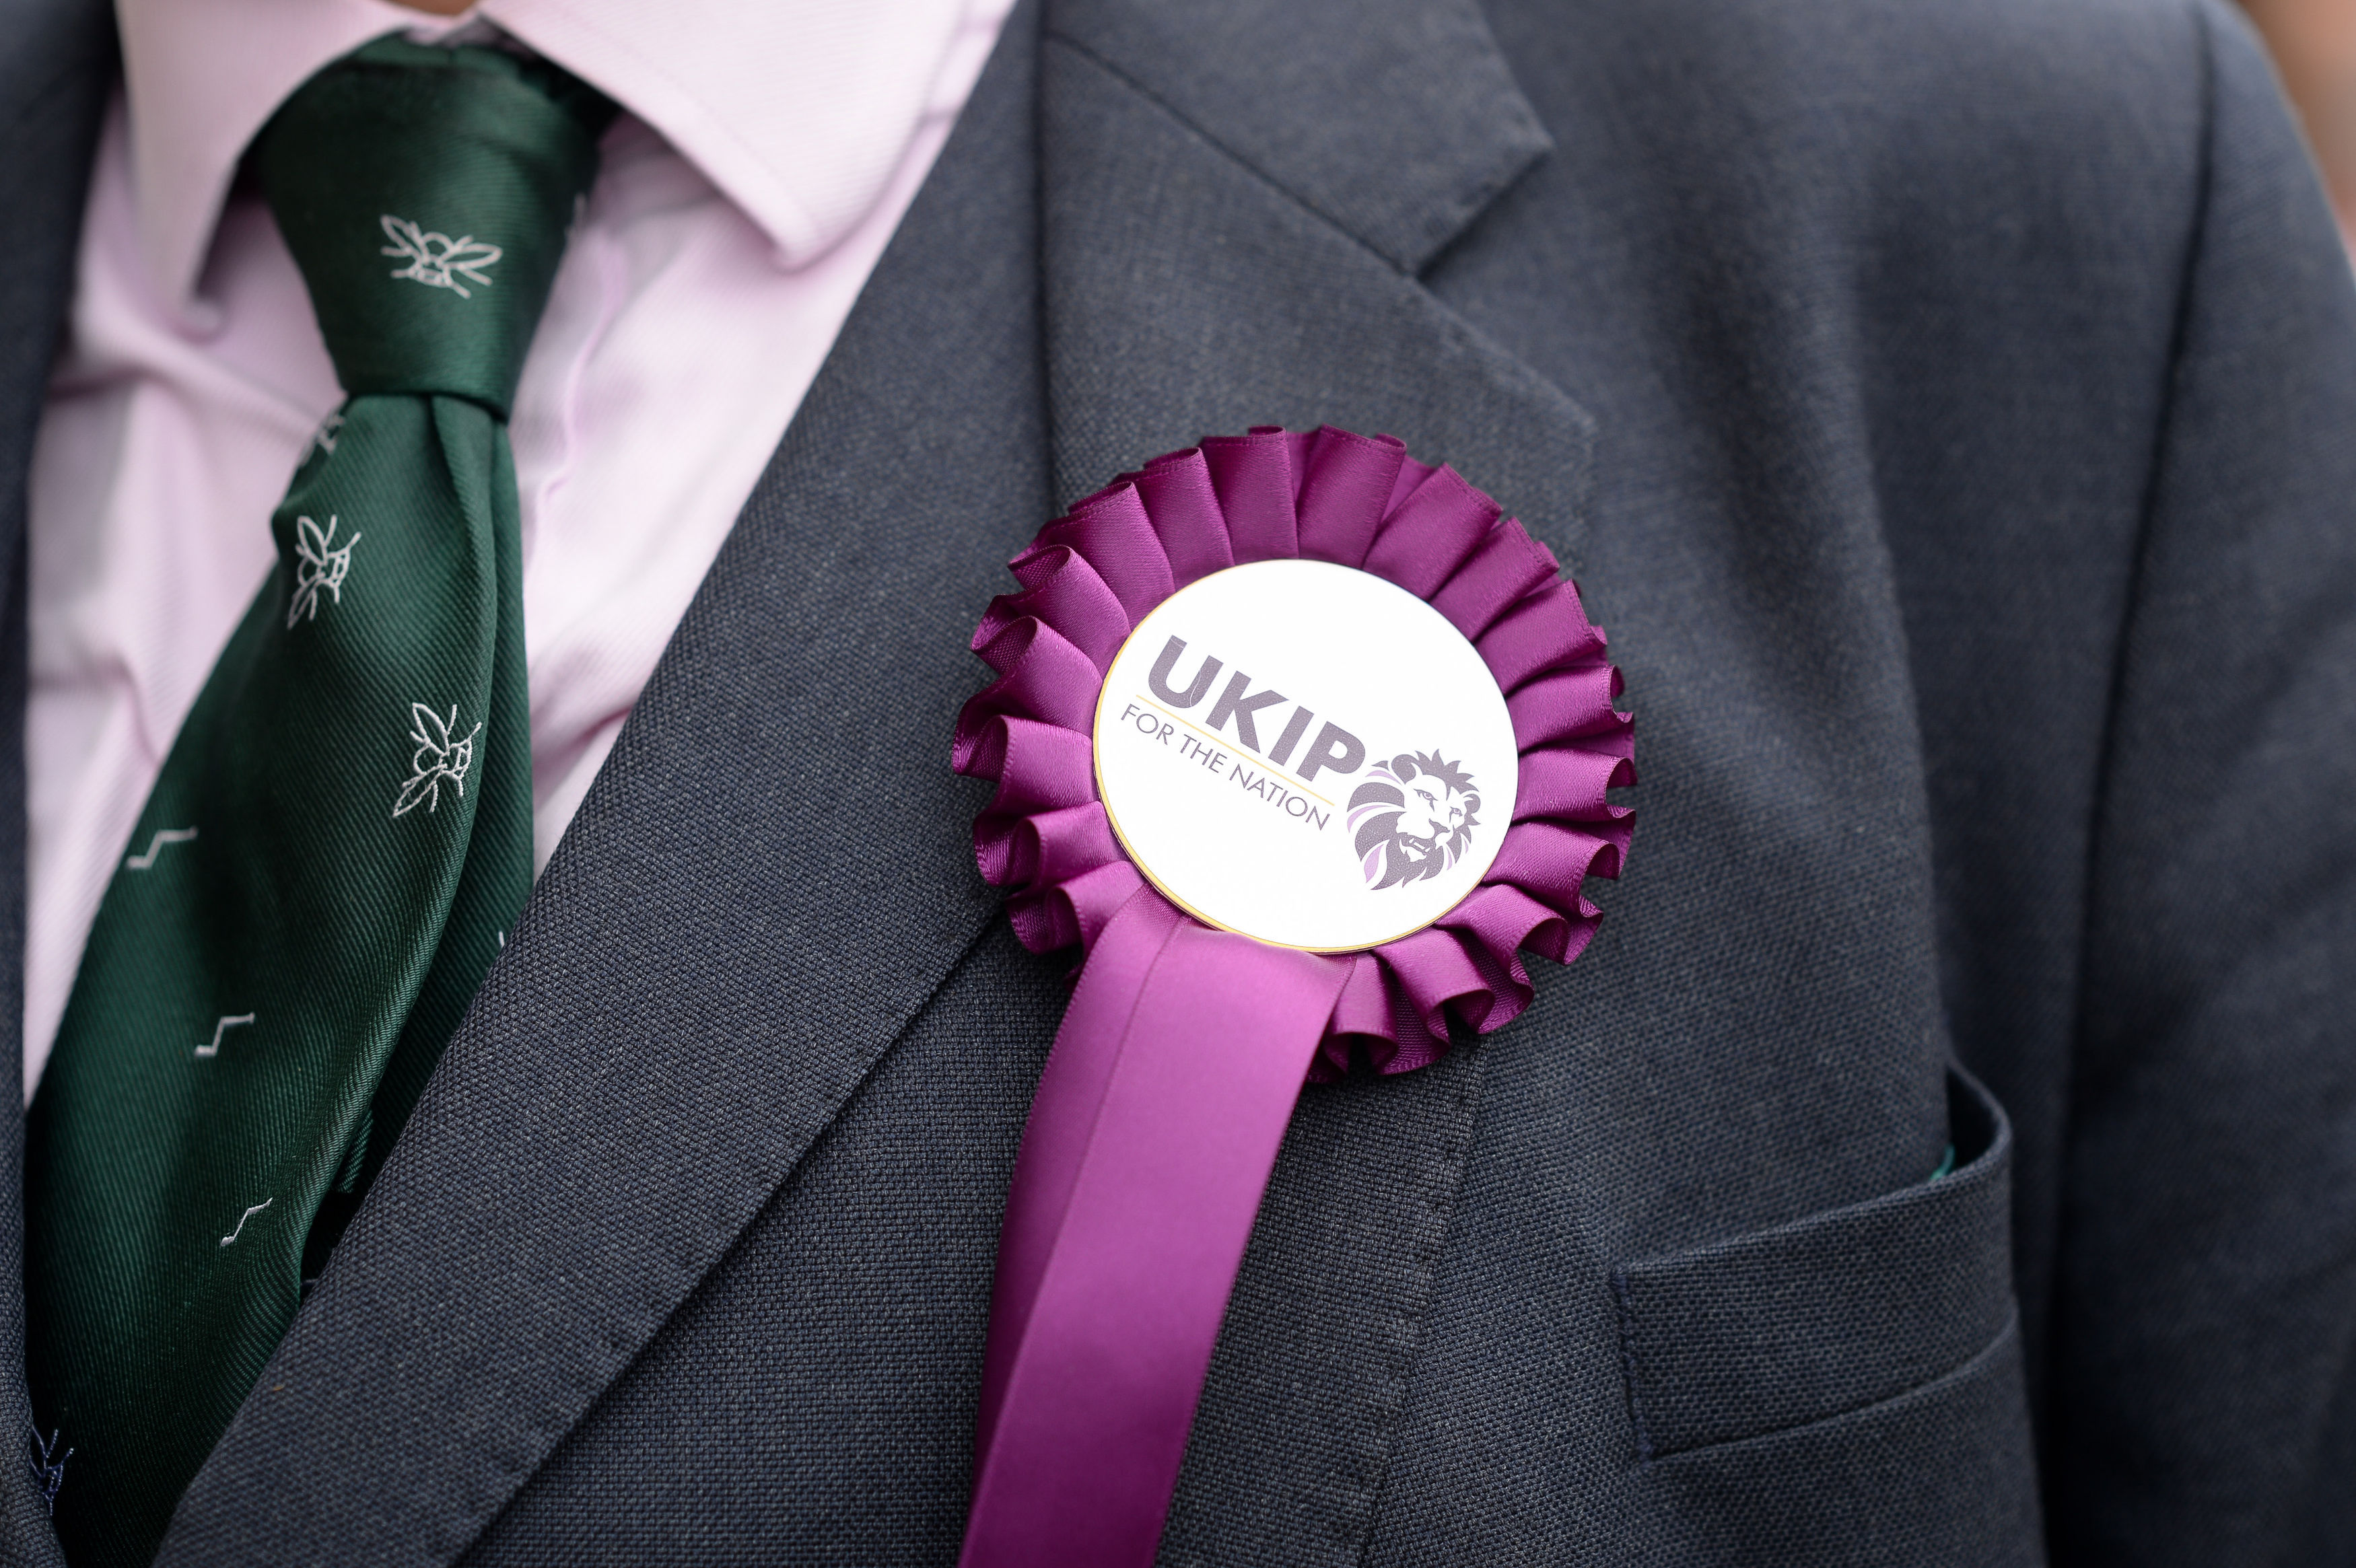 The Ukip logo on a rosette